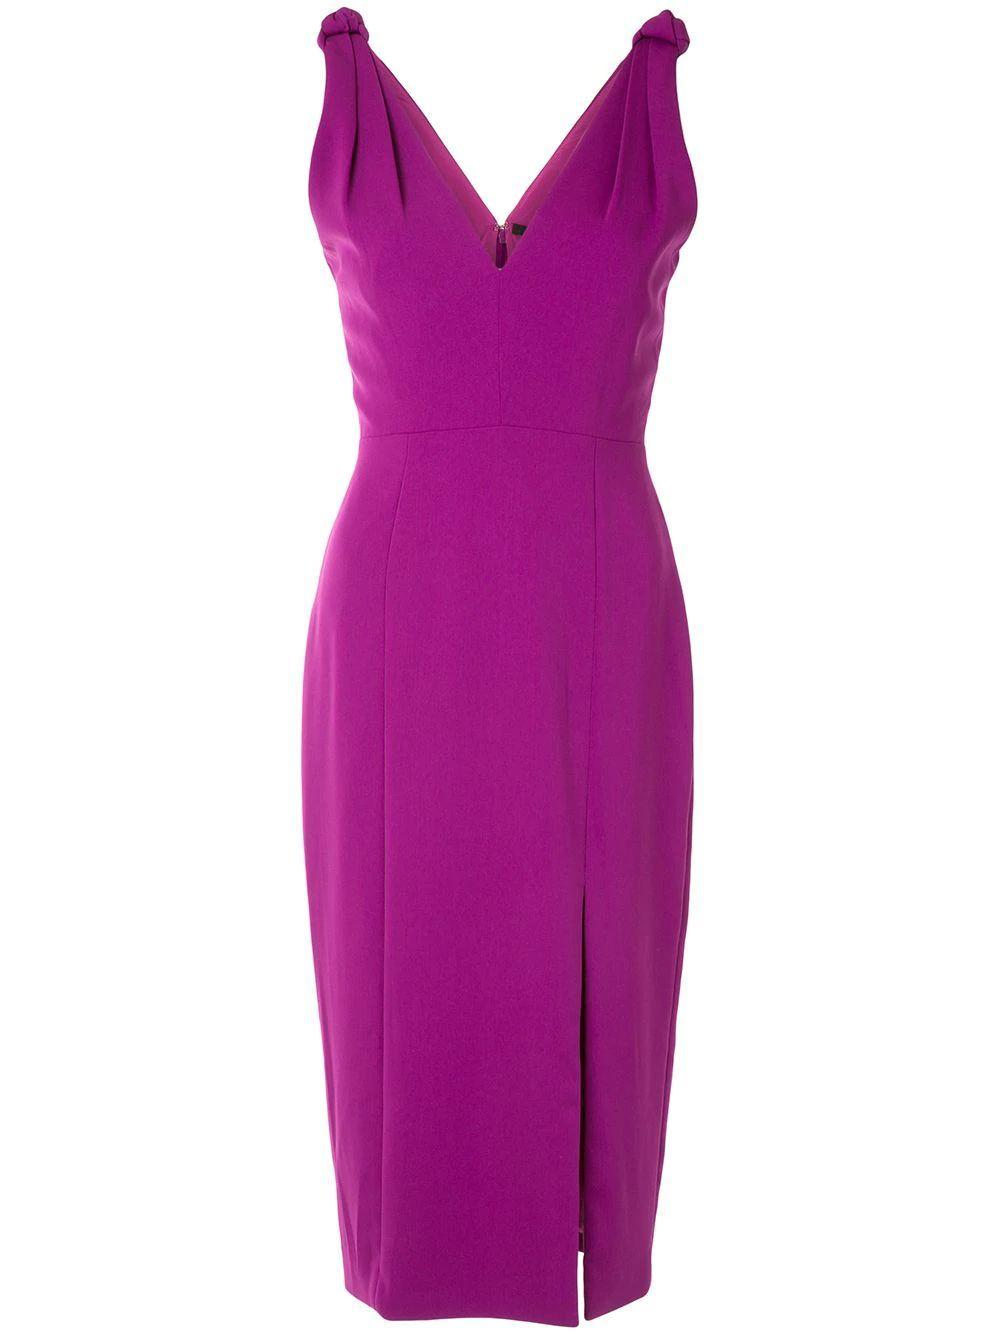 Violet Knot Shoulder Midi Dress